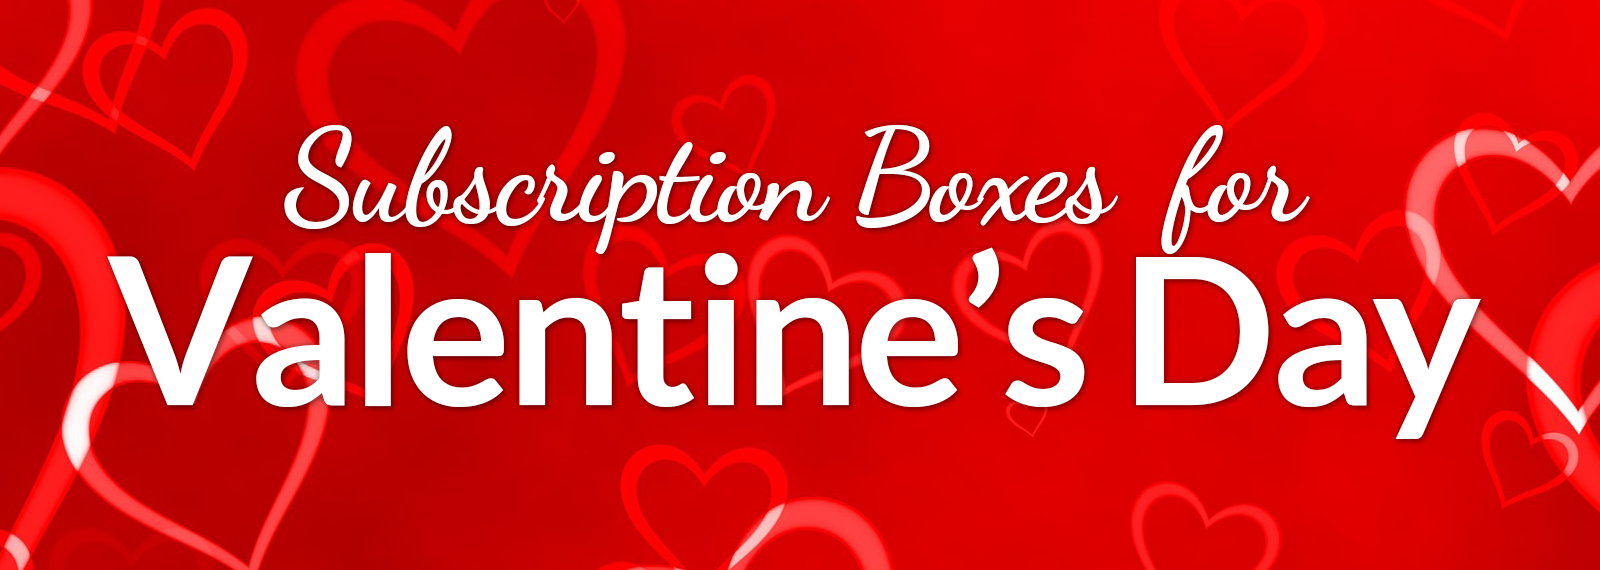 Subscription Boxes for Valentine's Day